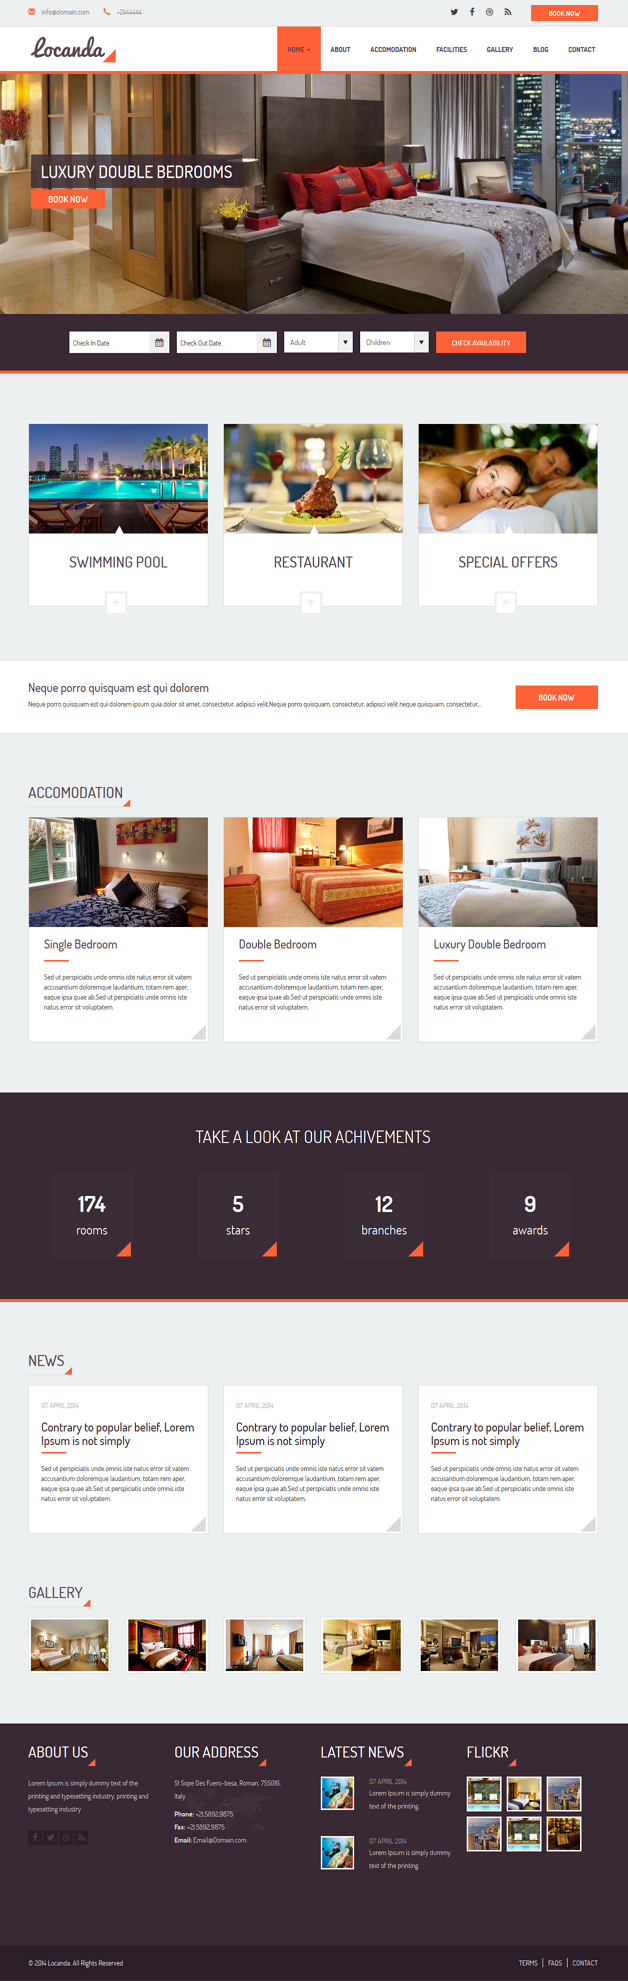 Locanda is responsive website template for Hotel build with Bootstrap framework 3. With clean de ...